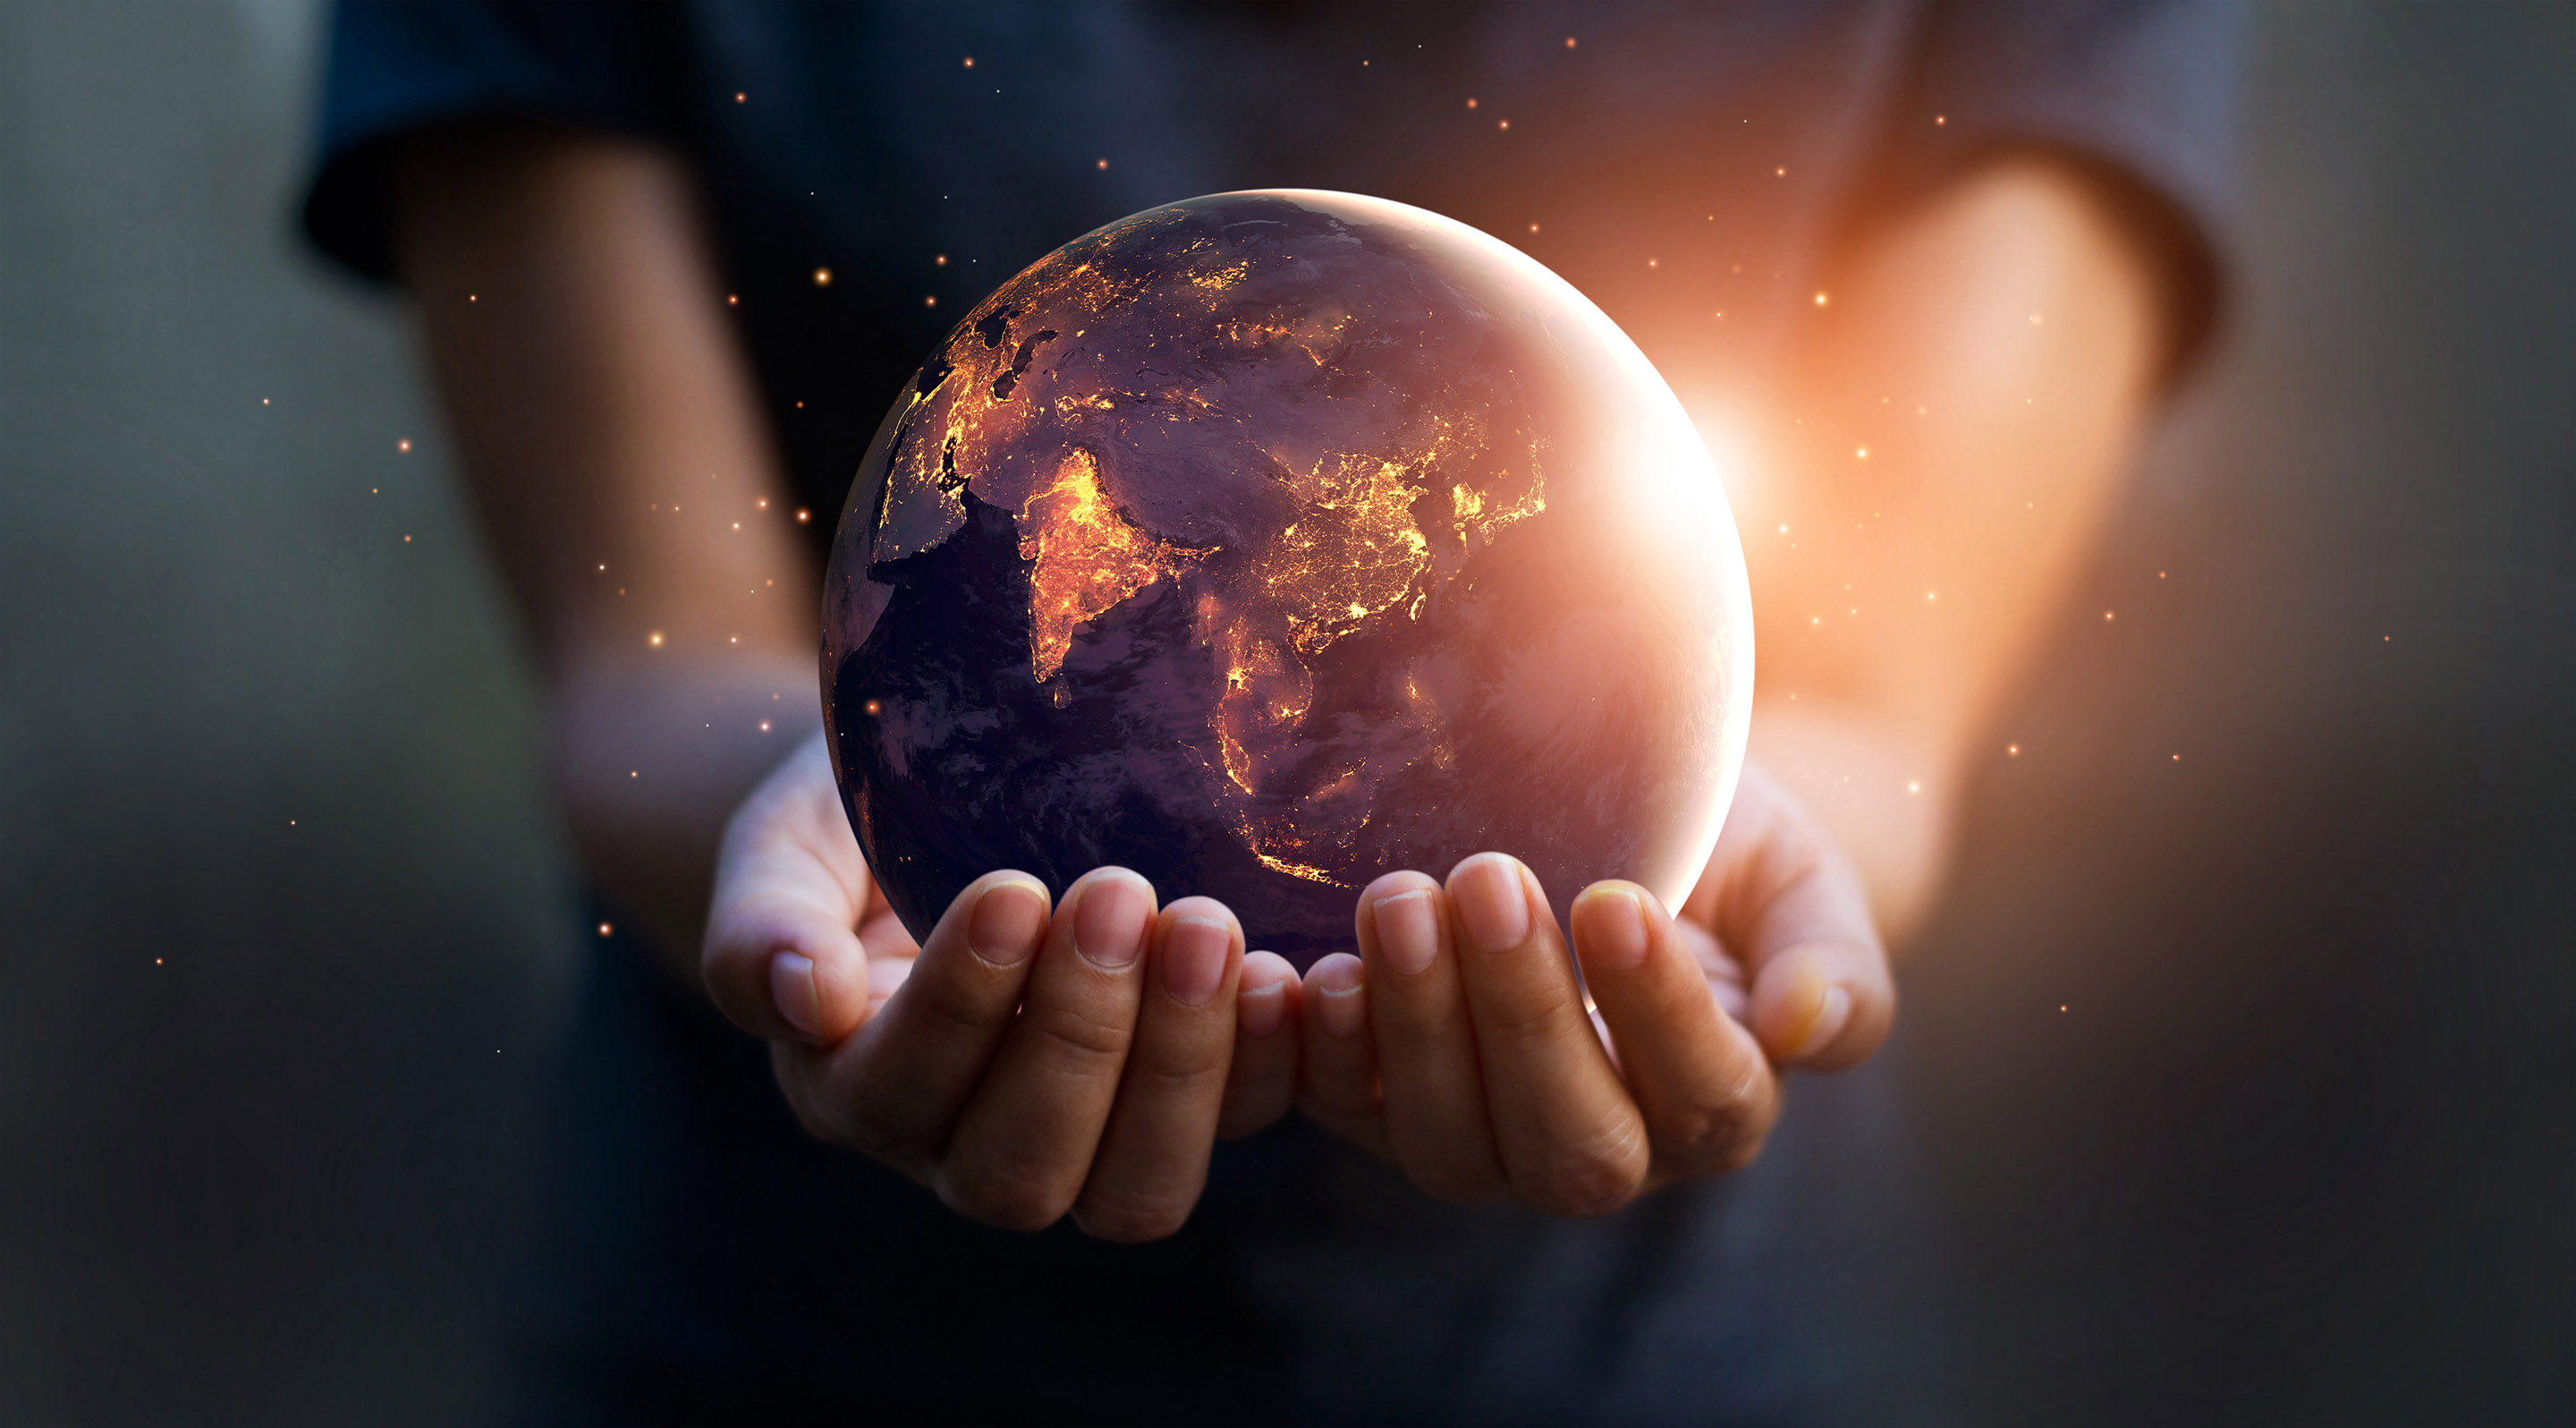 Utilitarian Approach to Global Climate Policy Improves Equity, Environment and Wellbeing